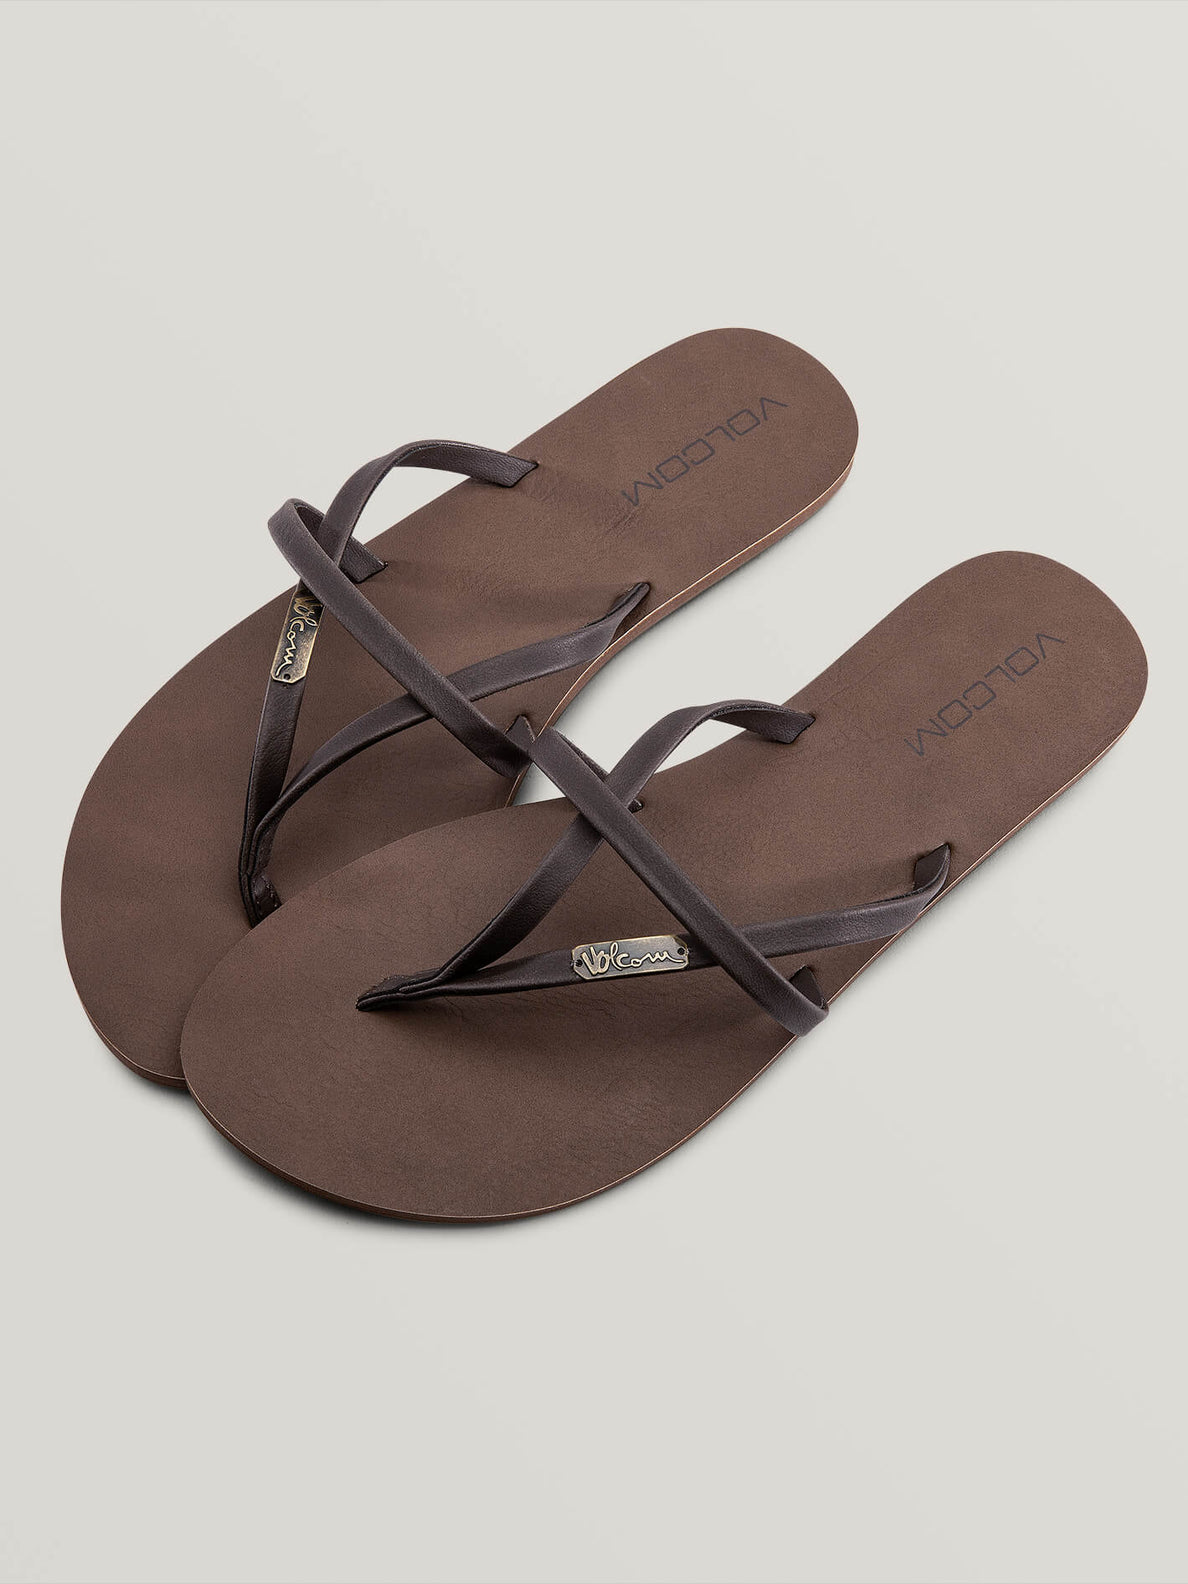 All Night Long Sandals In Brown, Front View